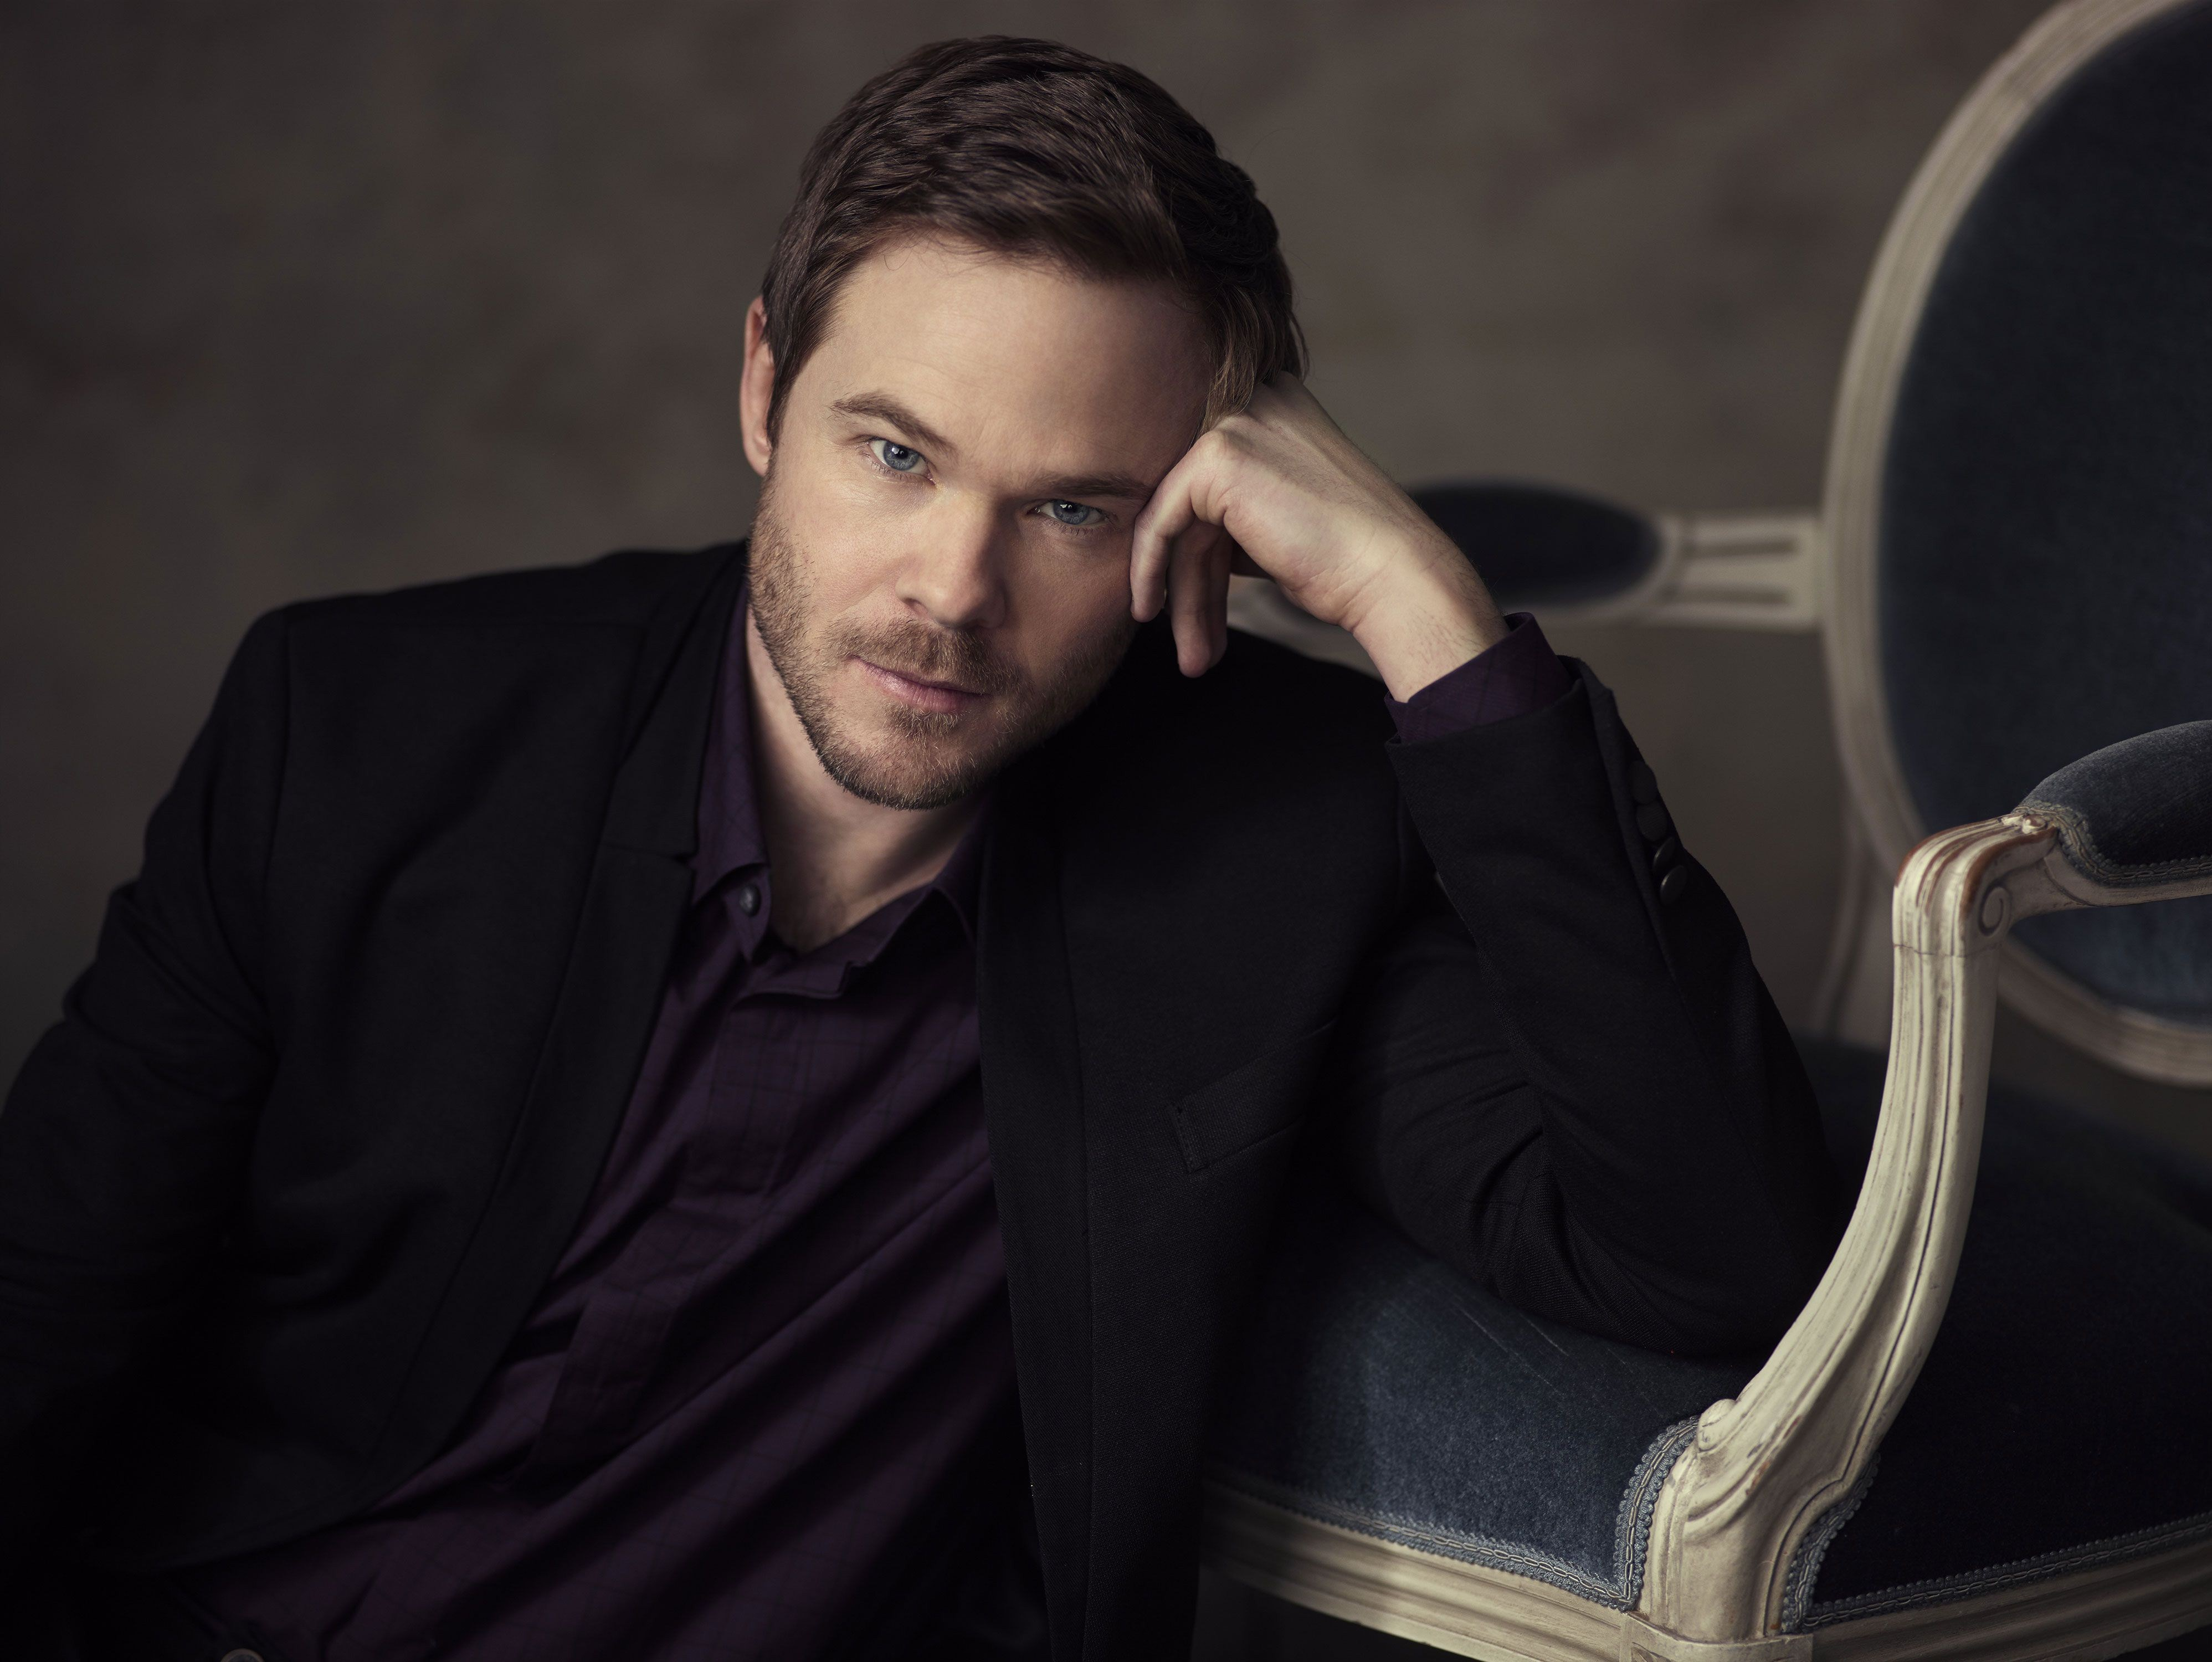 3993x3000 - Shawn Ashmore Wallpapers 1